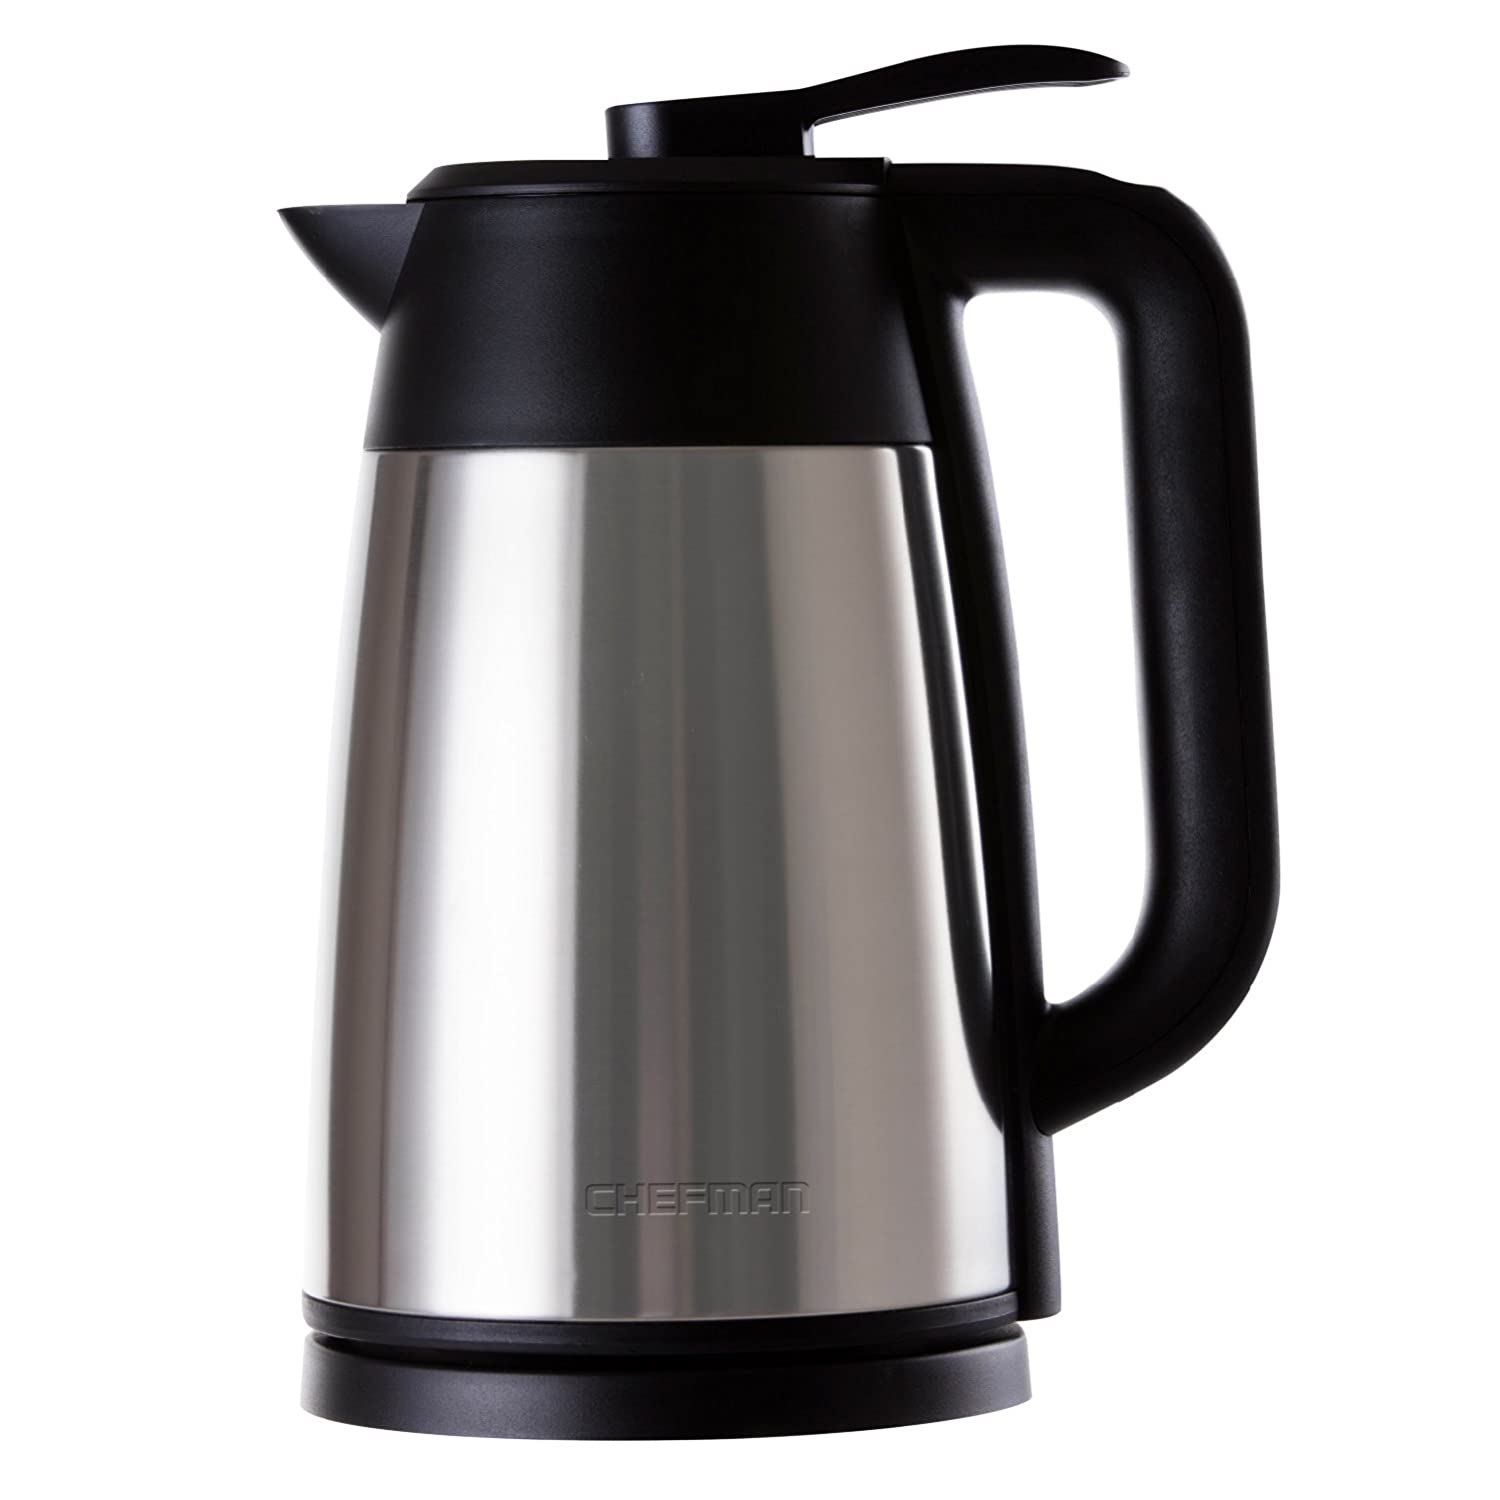 Chefman Cordless Electric Kettle, Stainless Steel Premium Grade Carafe Style w/Digital Temp Display, Heat Retaining Vacuum Seal, Auto Shut Off & Boil Dry Protection, 7+ Cup 1.7L/1.8qt. - RJ11-17-DV